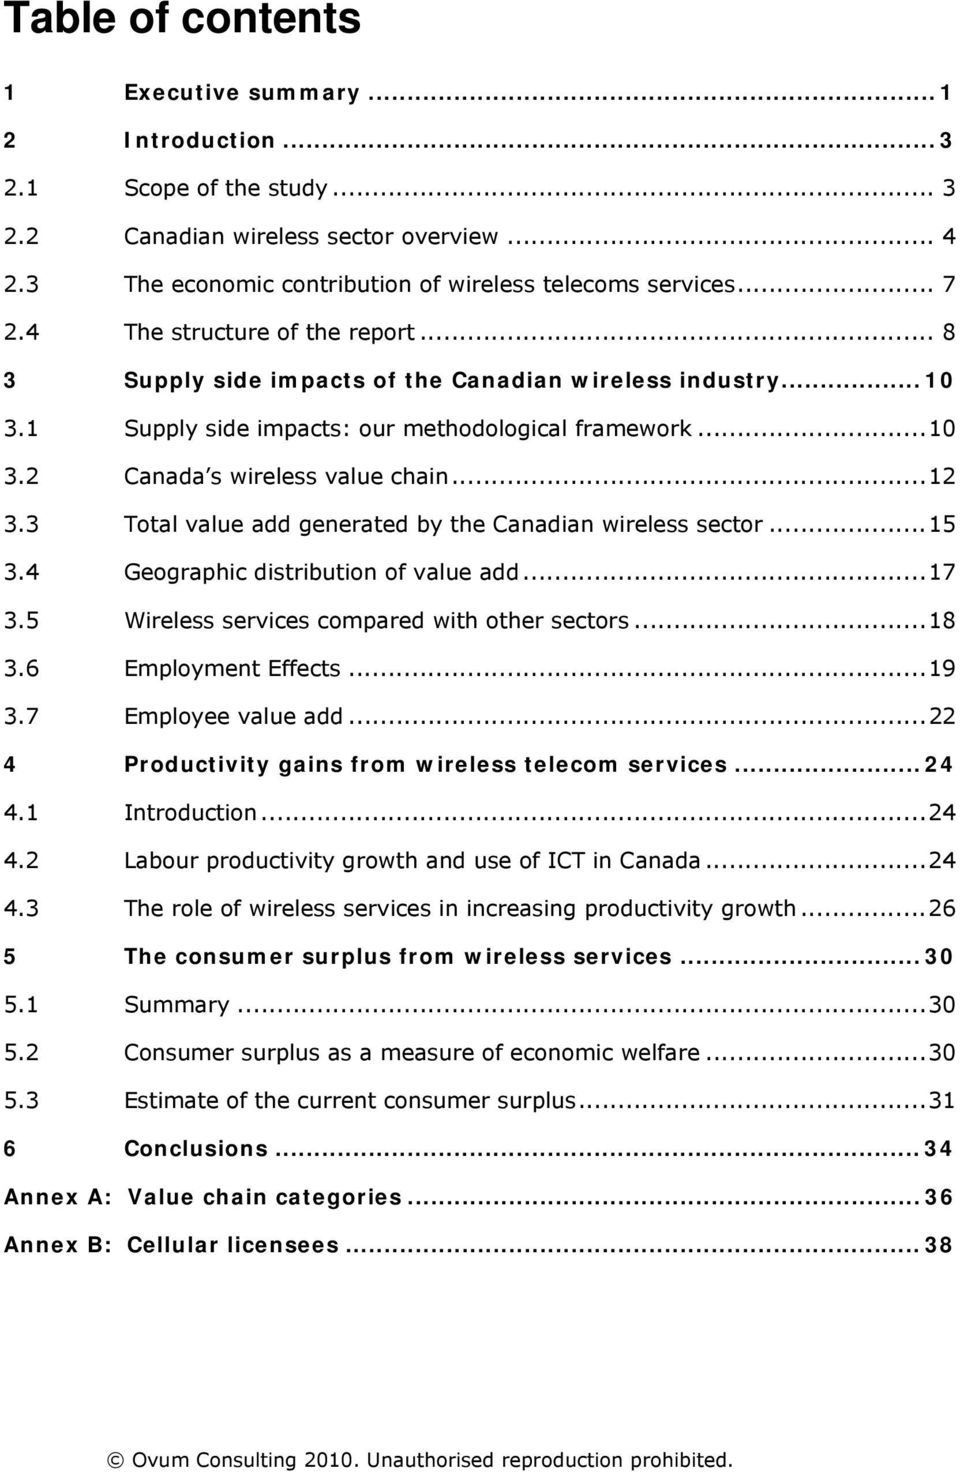 3 Total value add generated by the Canadian wireless sector...15 3.4 Geographic distribution of value add...17 3.5 Wireless services compared with other sectors...18 3.6 Employment Effects...19 3.